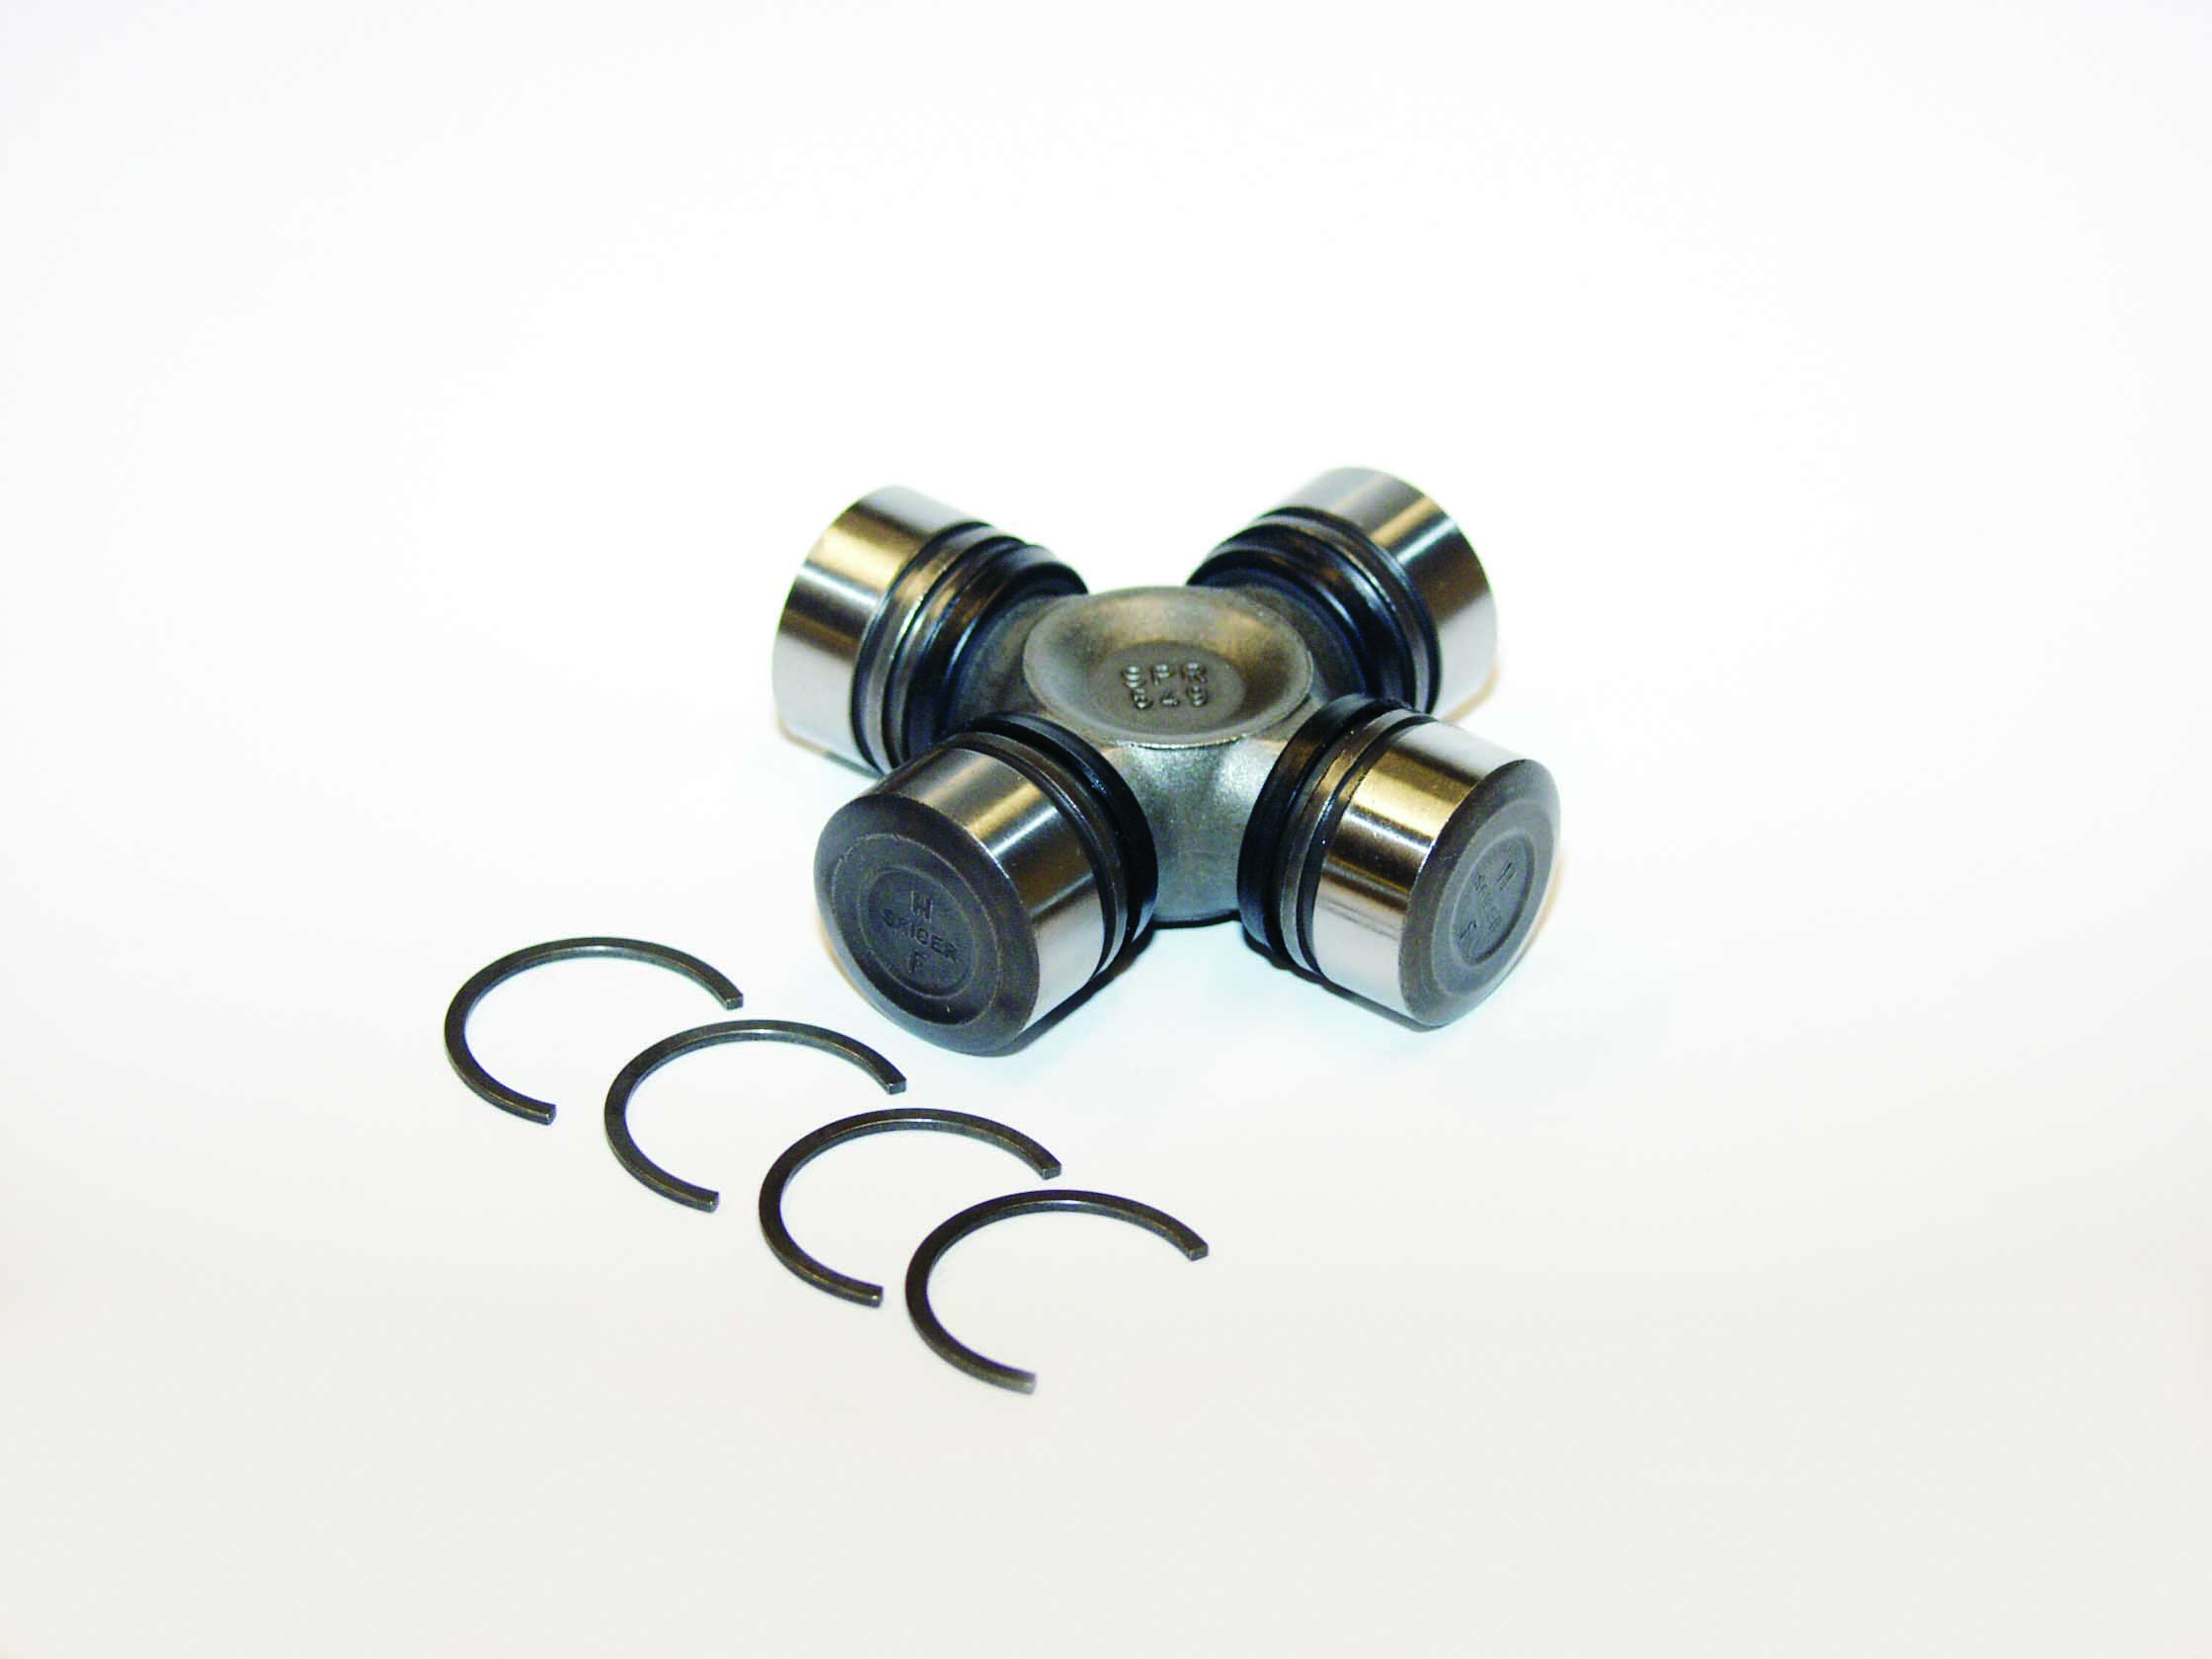 5U760 - Spicer U-Joint for Dana 44 Front Axle Shafts